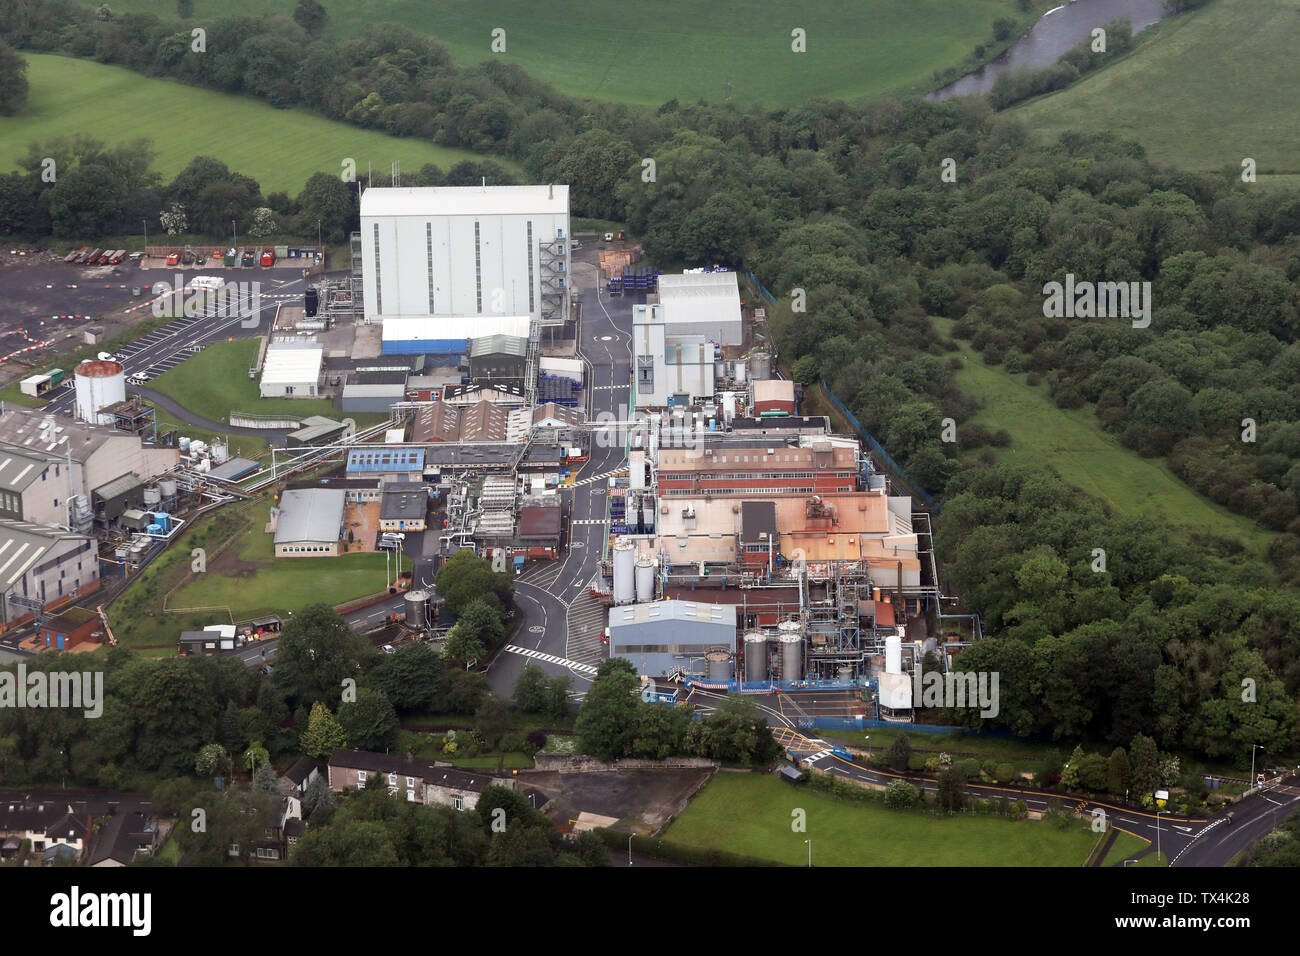 aerial view of the Johnson Matthey factory plane at Clitheroe, Lancashire, UK - Stock Image